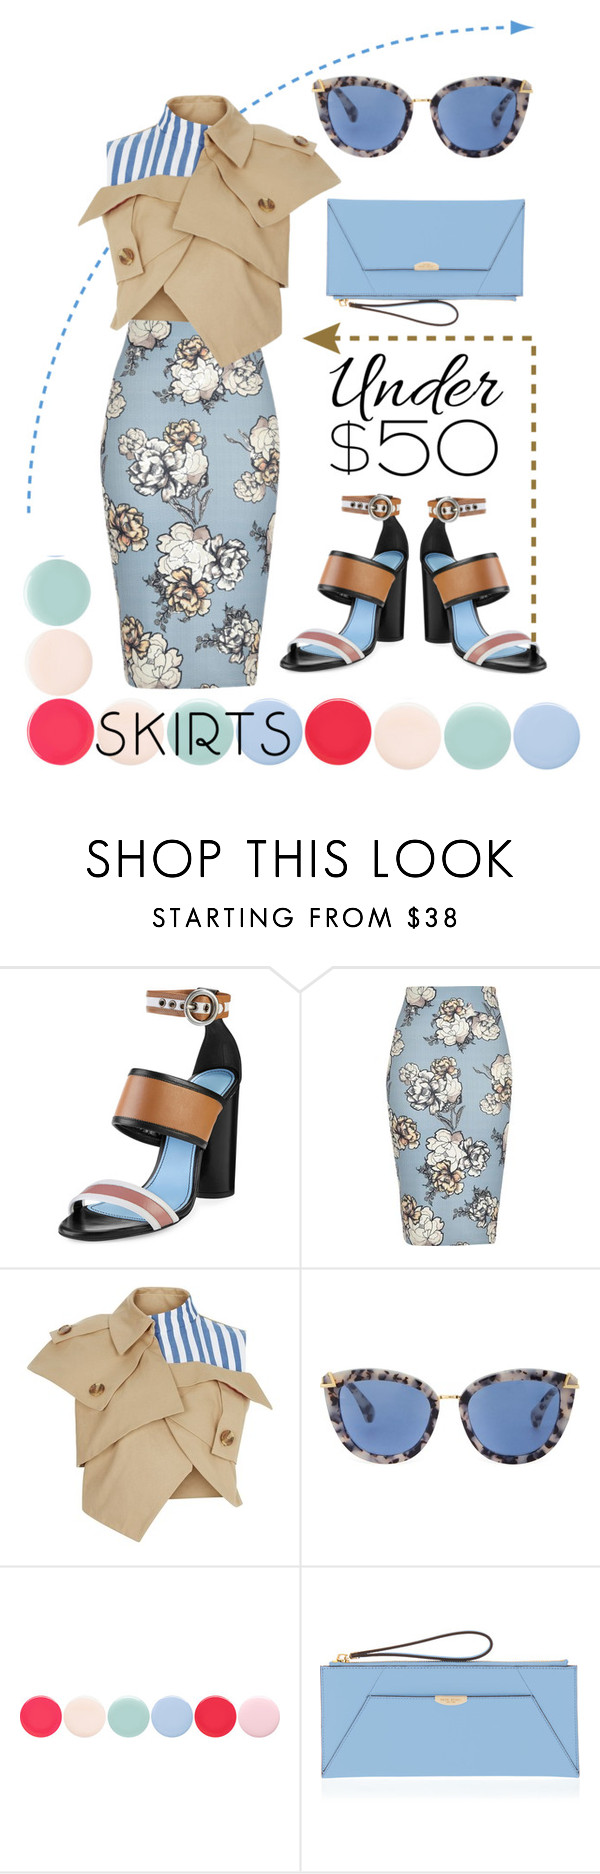 """""""Skirt the flowers"""" by jioulianova ❤ liked on Polyvore featuring Lanvin, River Island, A.W.A.K.E., Nails Inc., Henri Bendel, under50 and skirtunder50"""